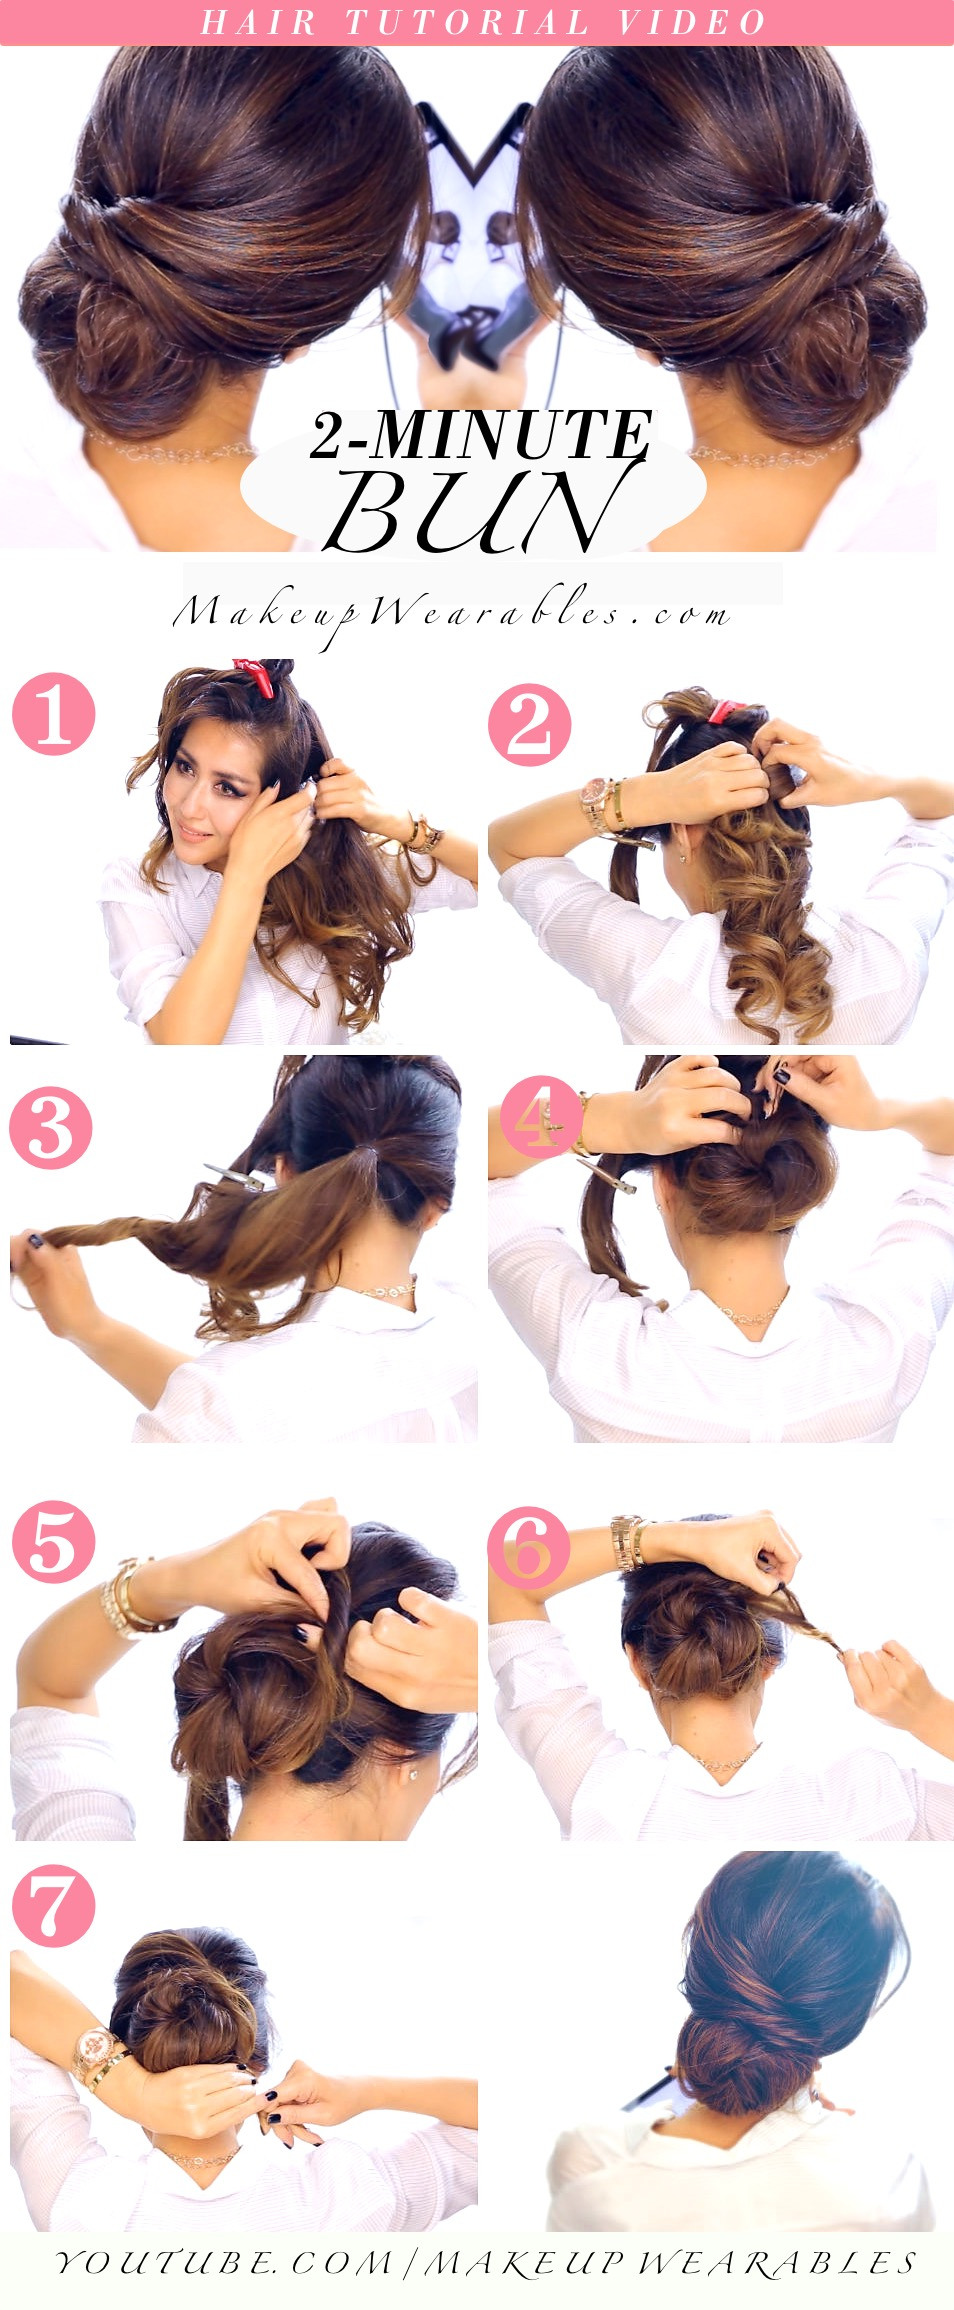 Swell Top 25 Messy Hair Bun Tutorials Perfect For Those Lazy Mornings Short Hairstyles Gunalazisus